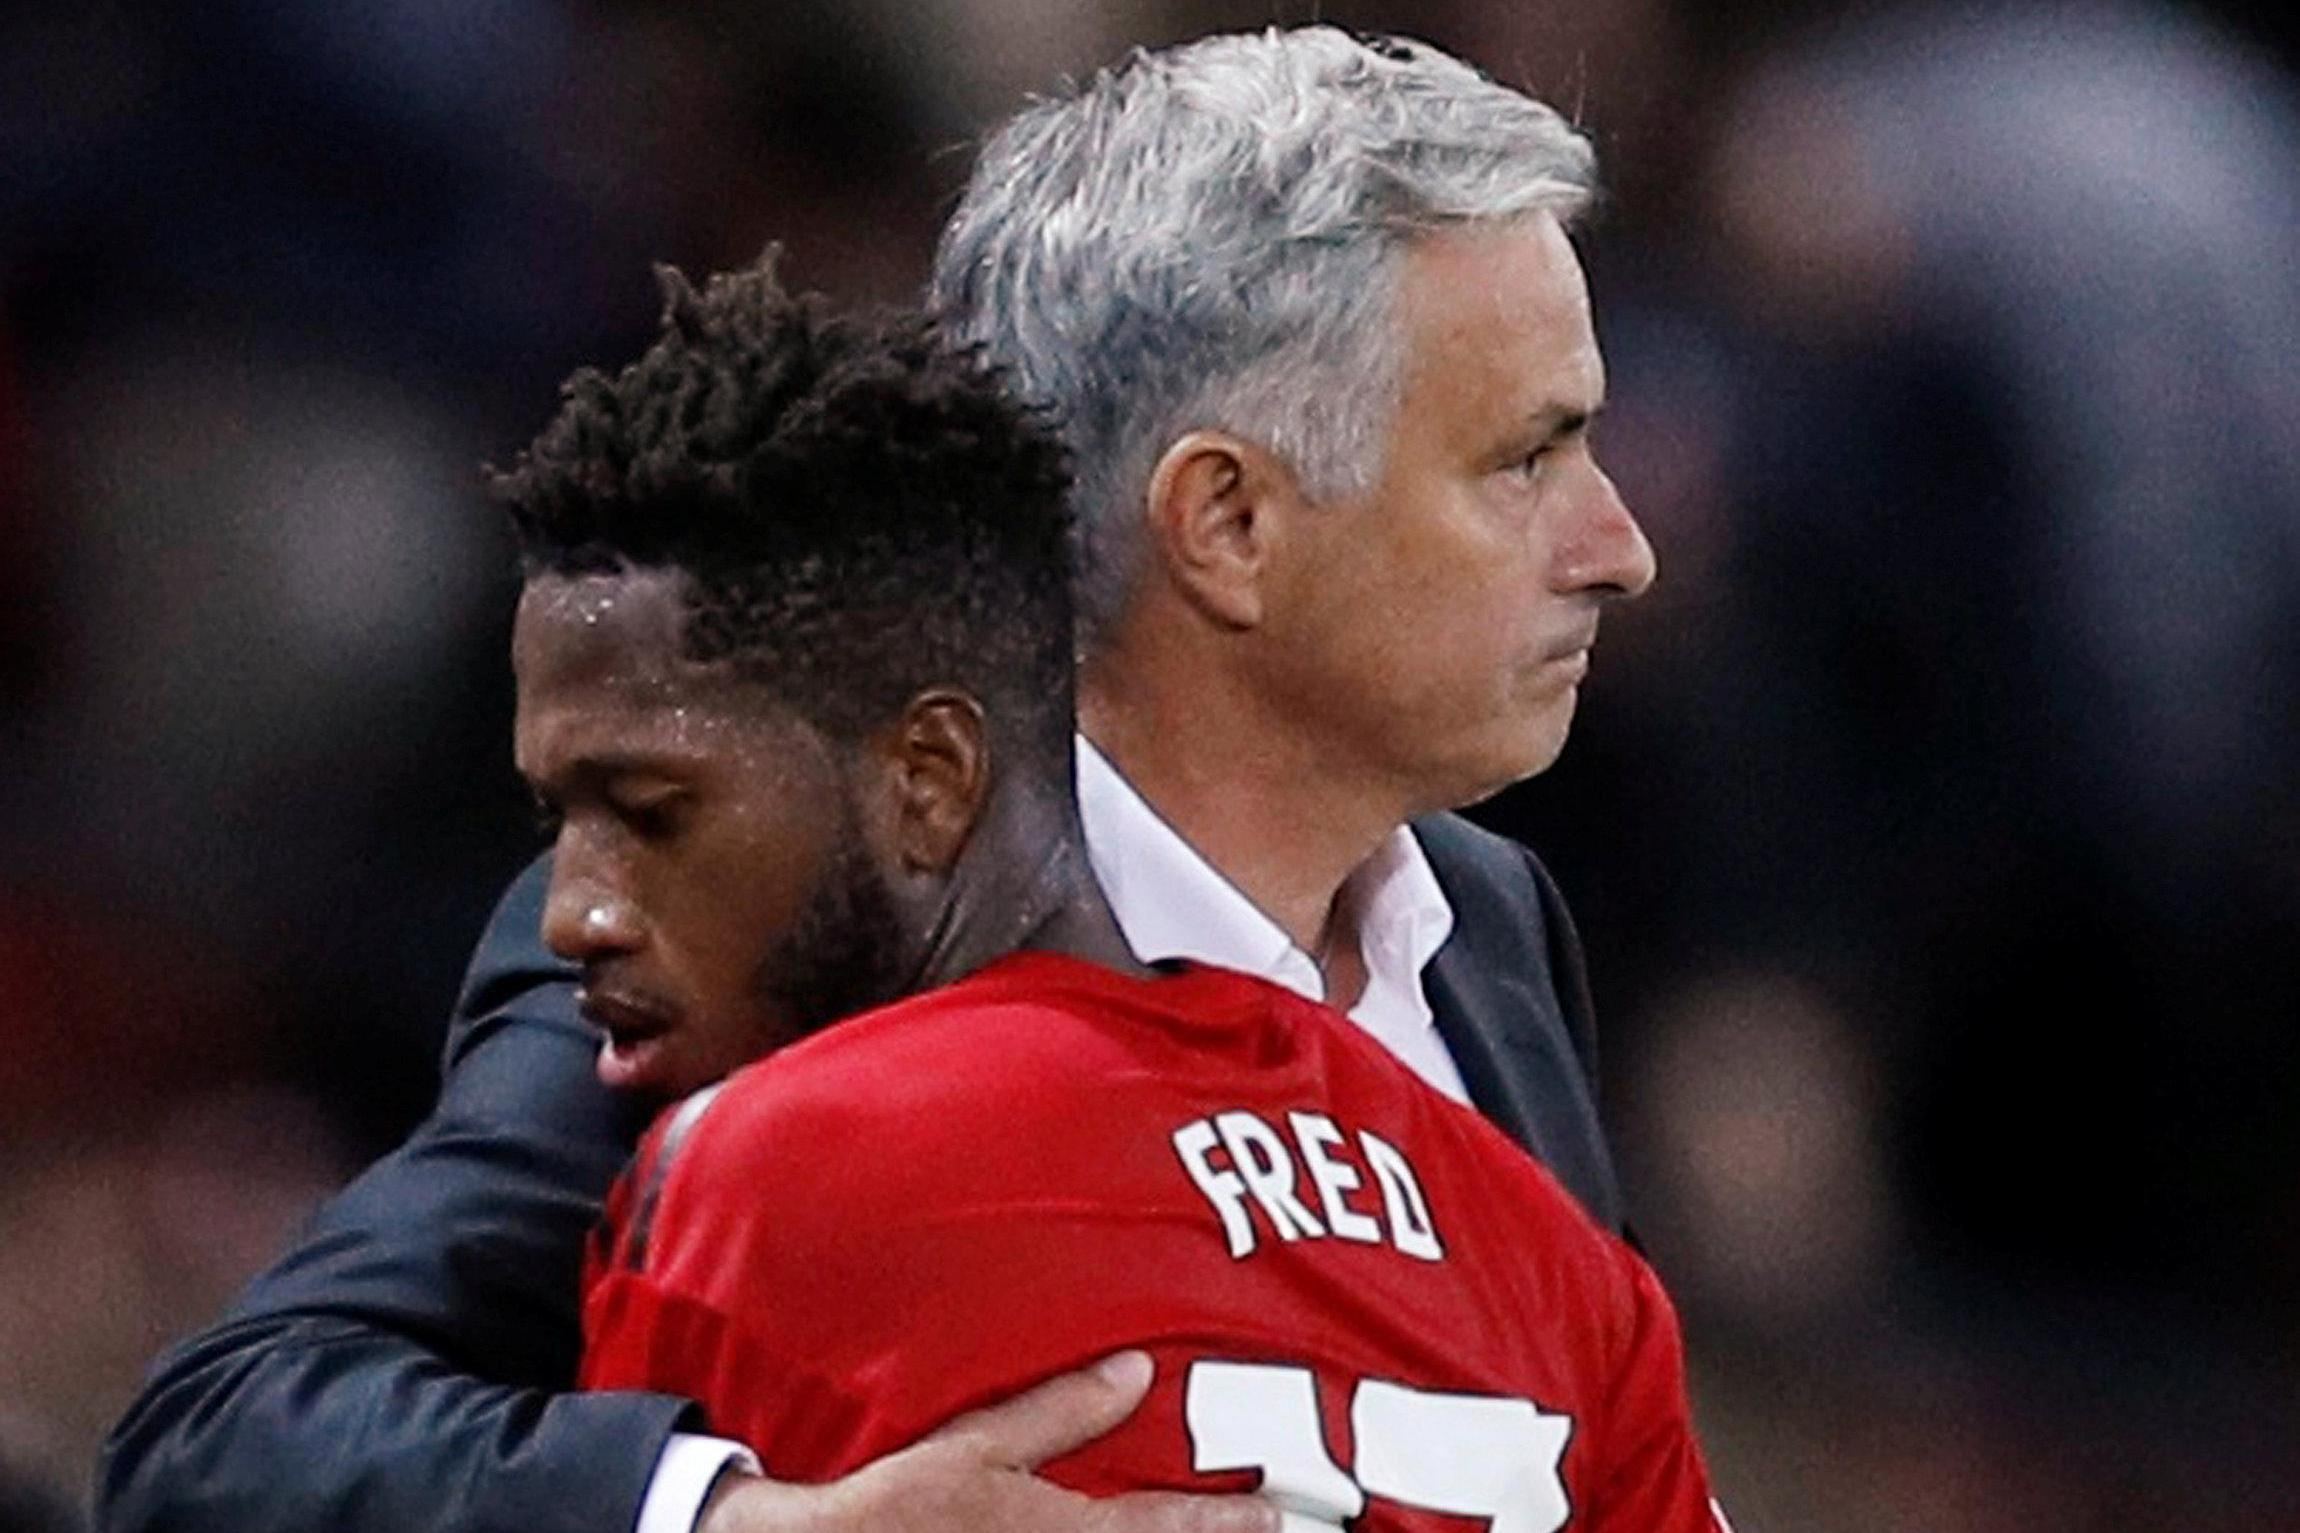 Jose Mourinho told Fred he would be part of his 'dream' midfield at Manchester United